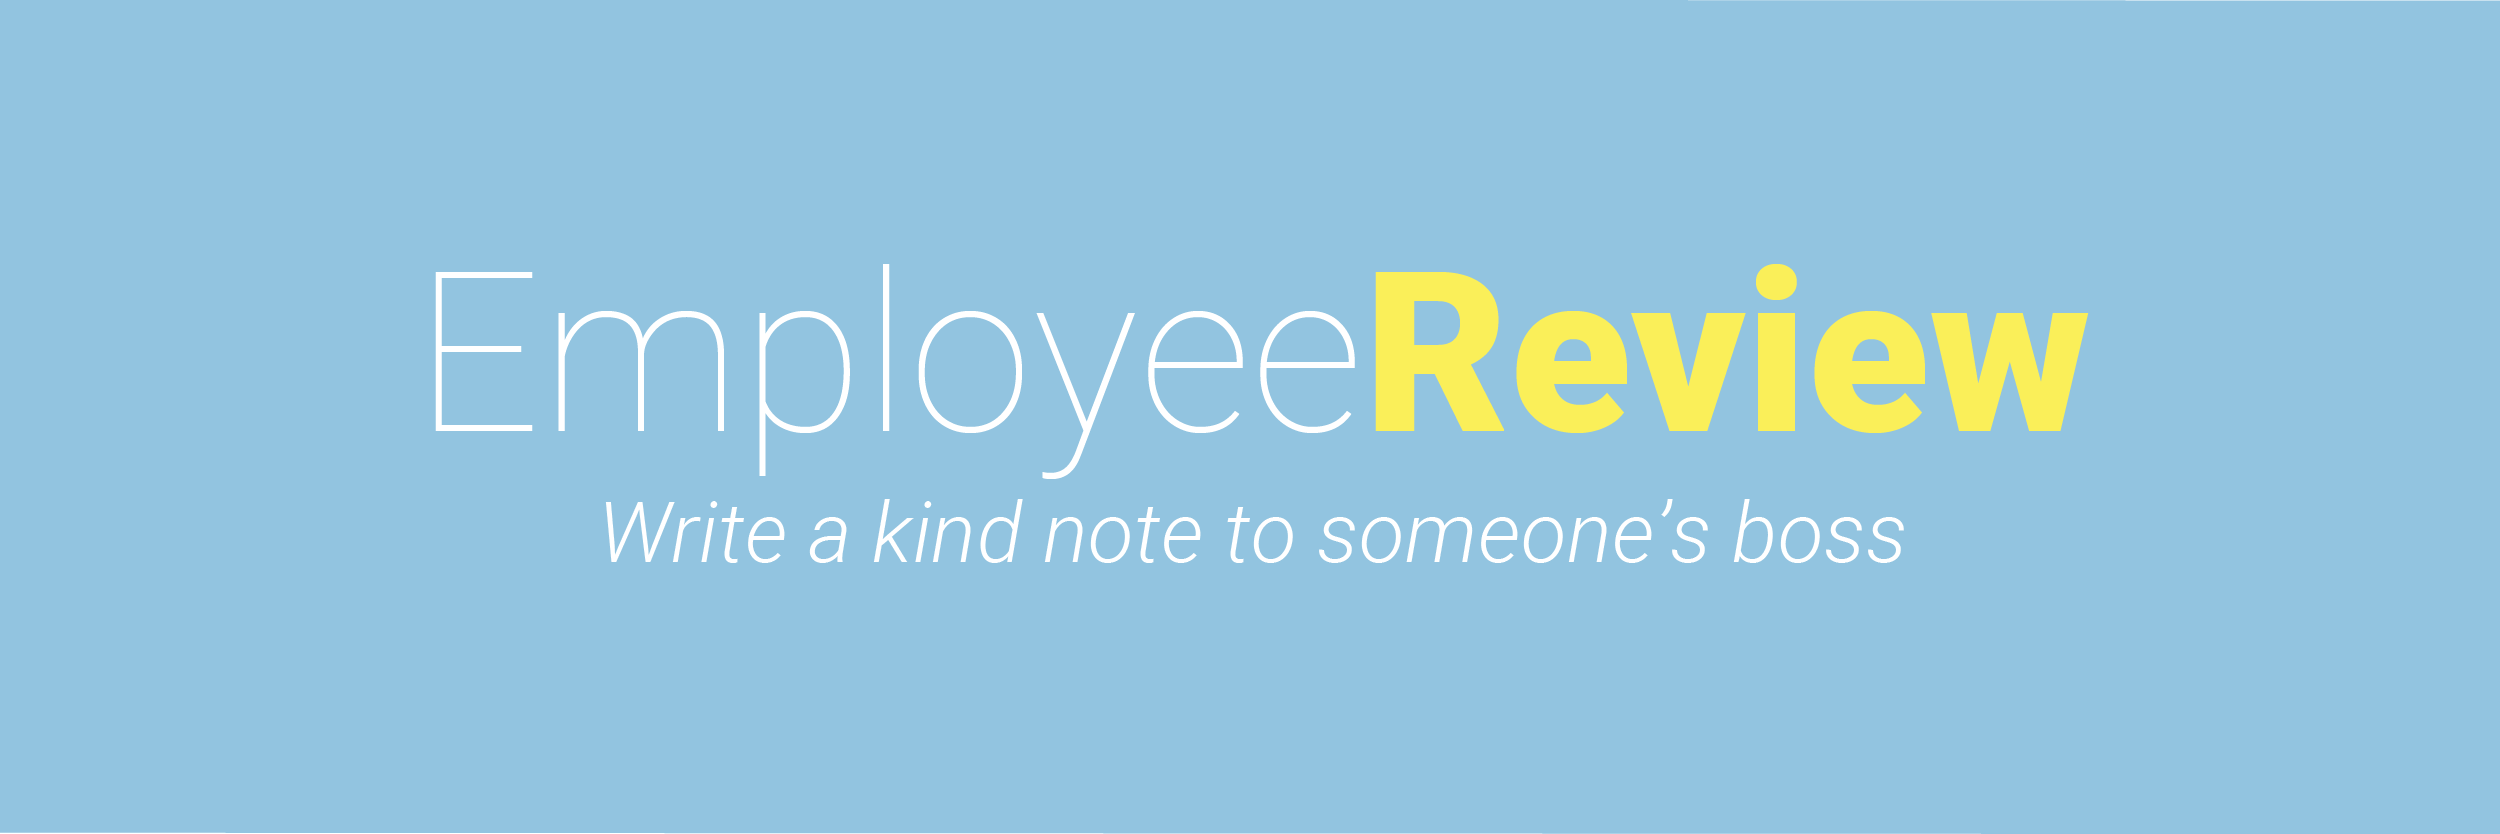 Employee Review-01-3